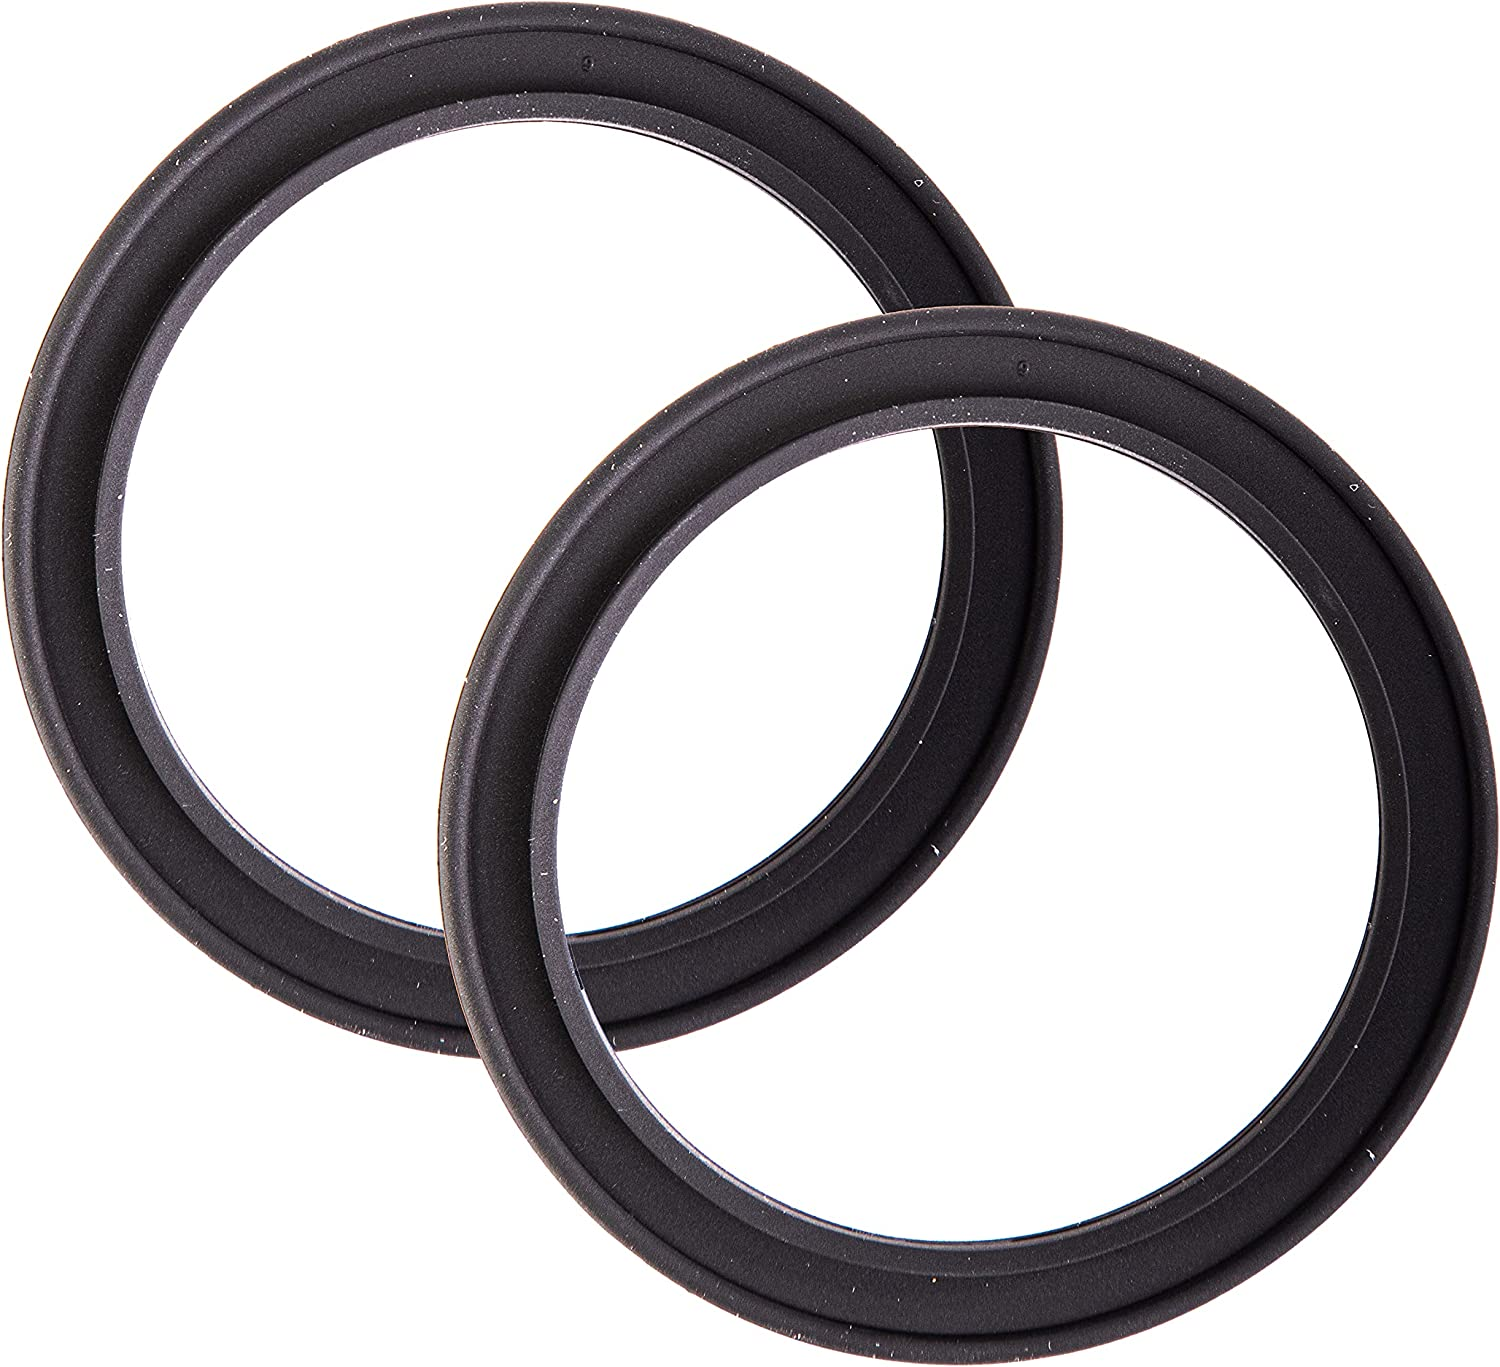 2 Pack Plunger Gasket Fits Presto Coff Dorothy Bargain Max 58% OFF Rapid Cold Brewer